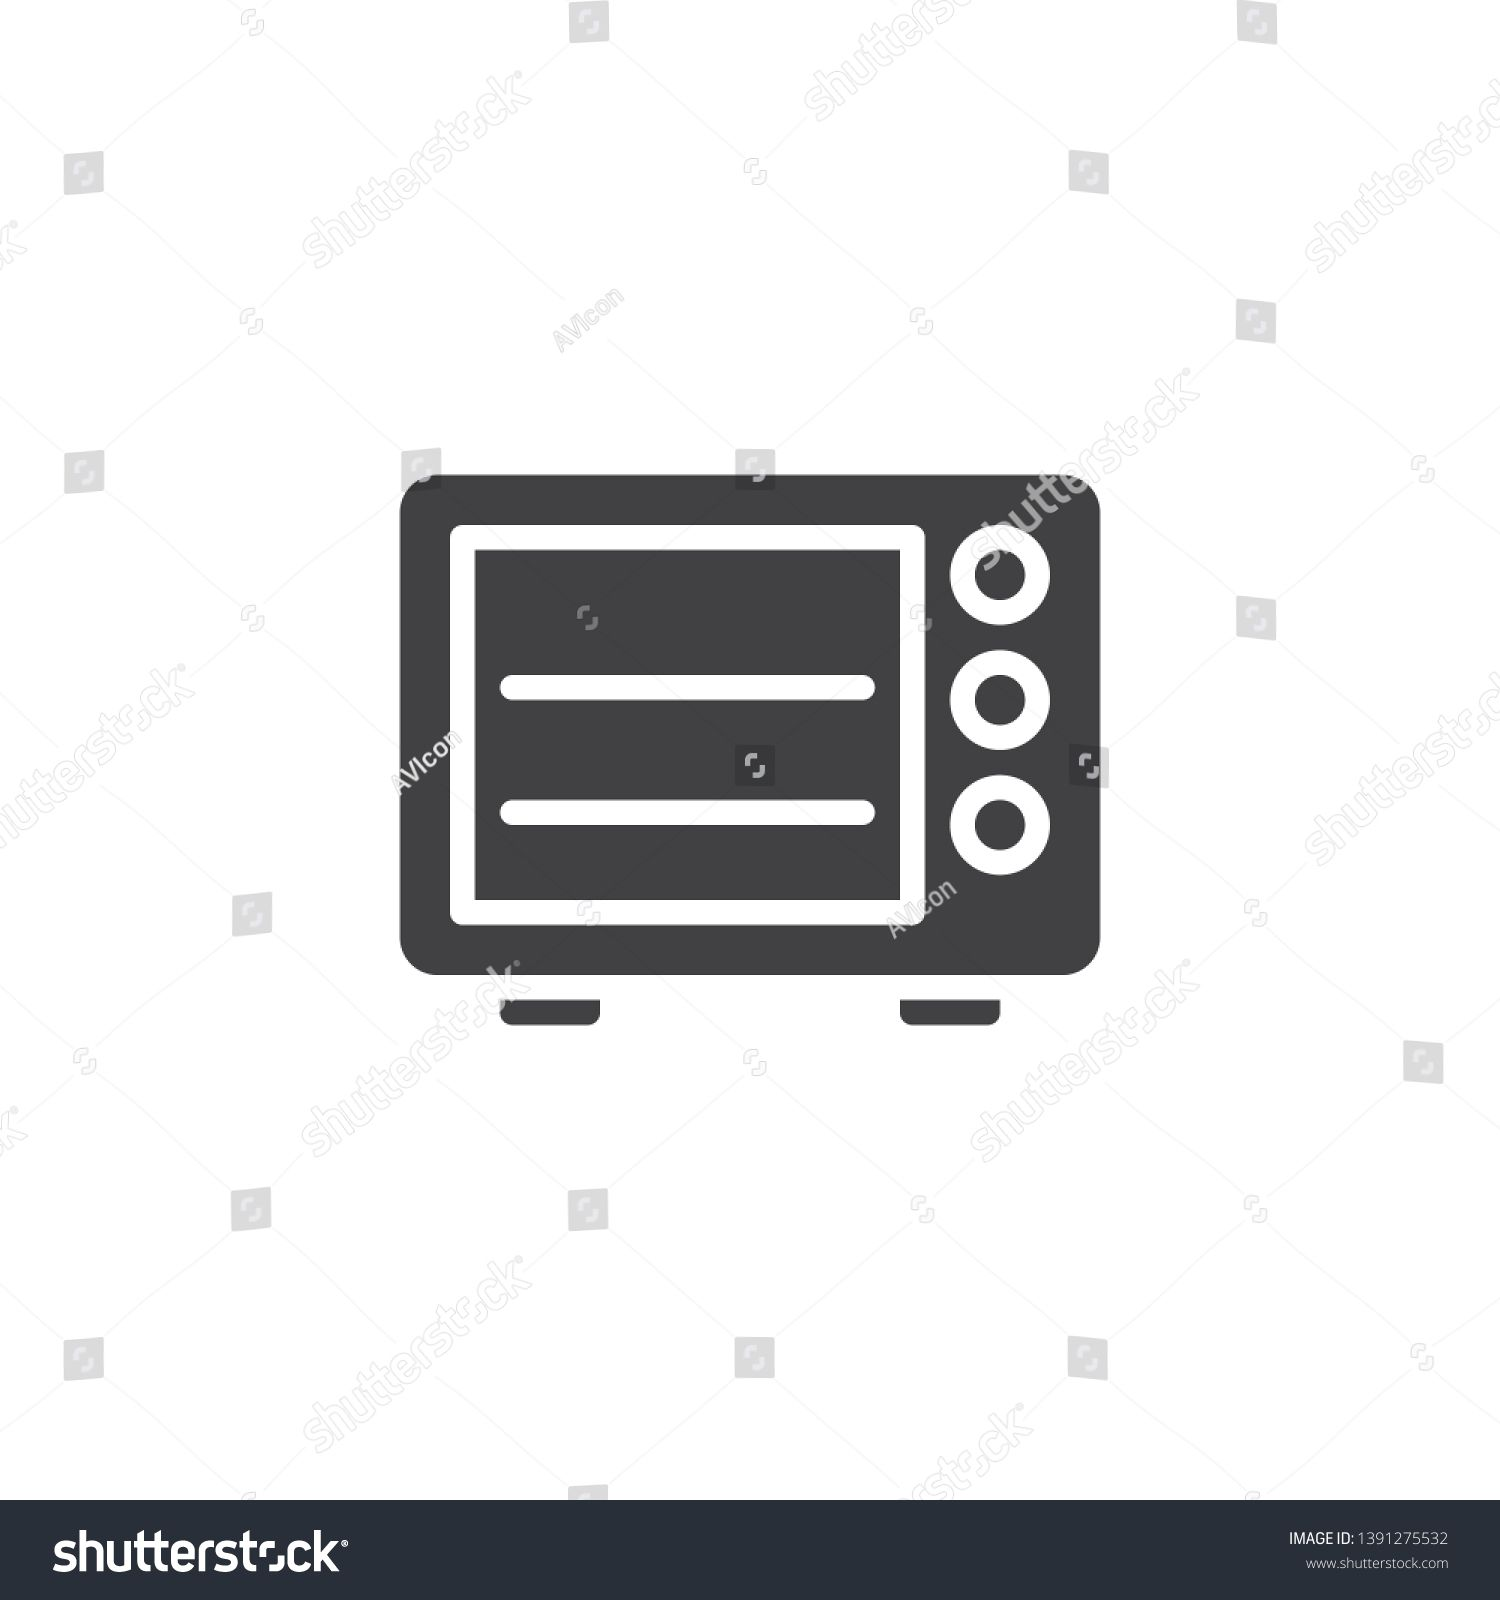 Microwave Oven Vector Icon Filled Flat Sign For Mobile Concept